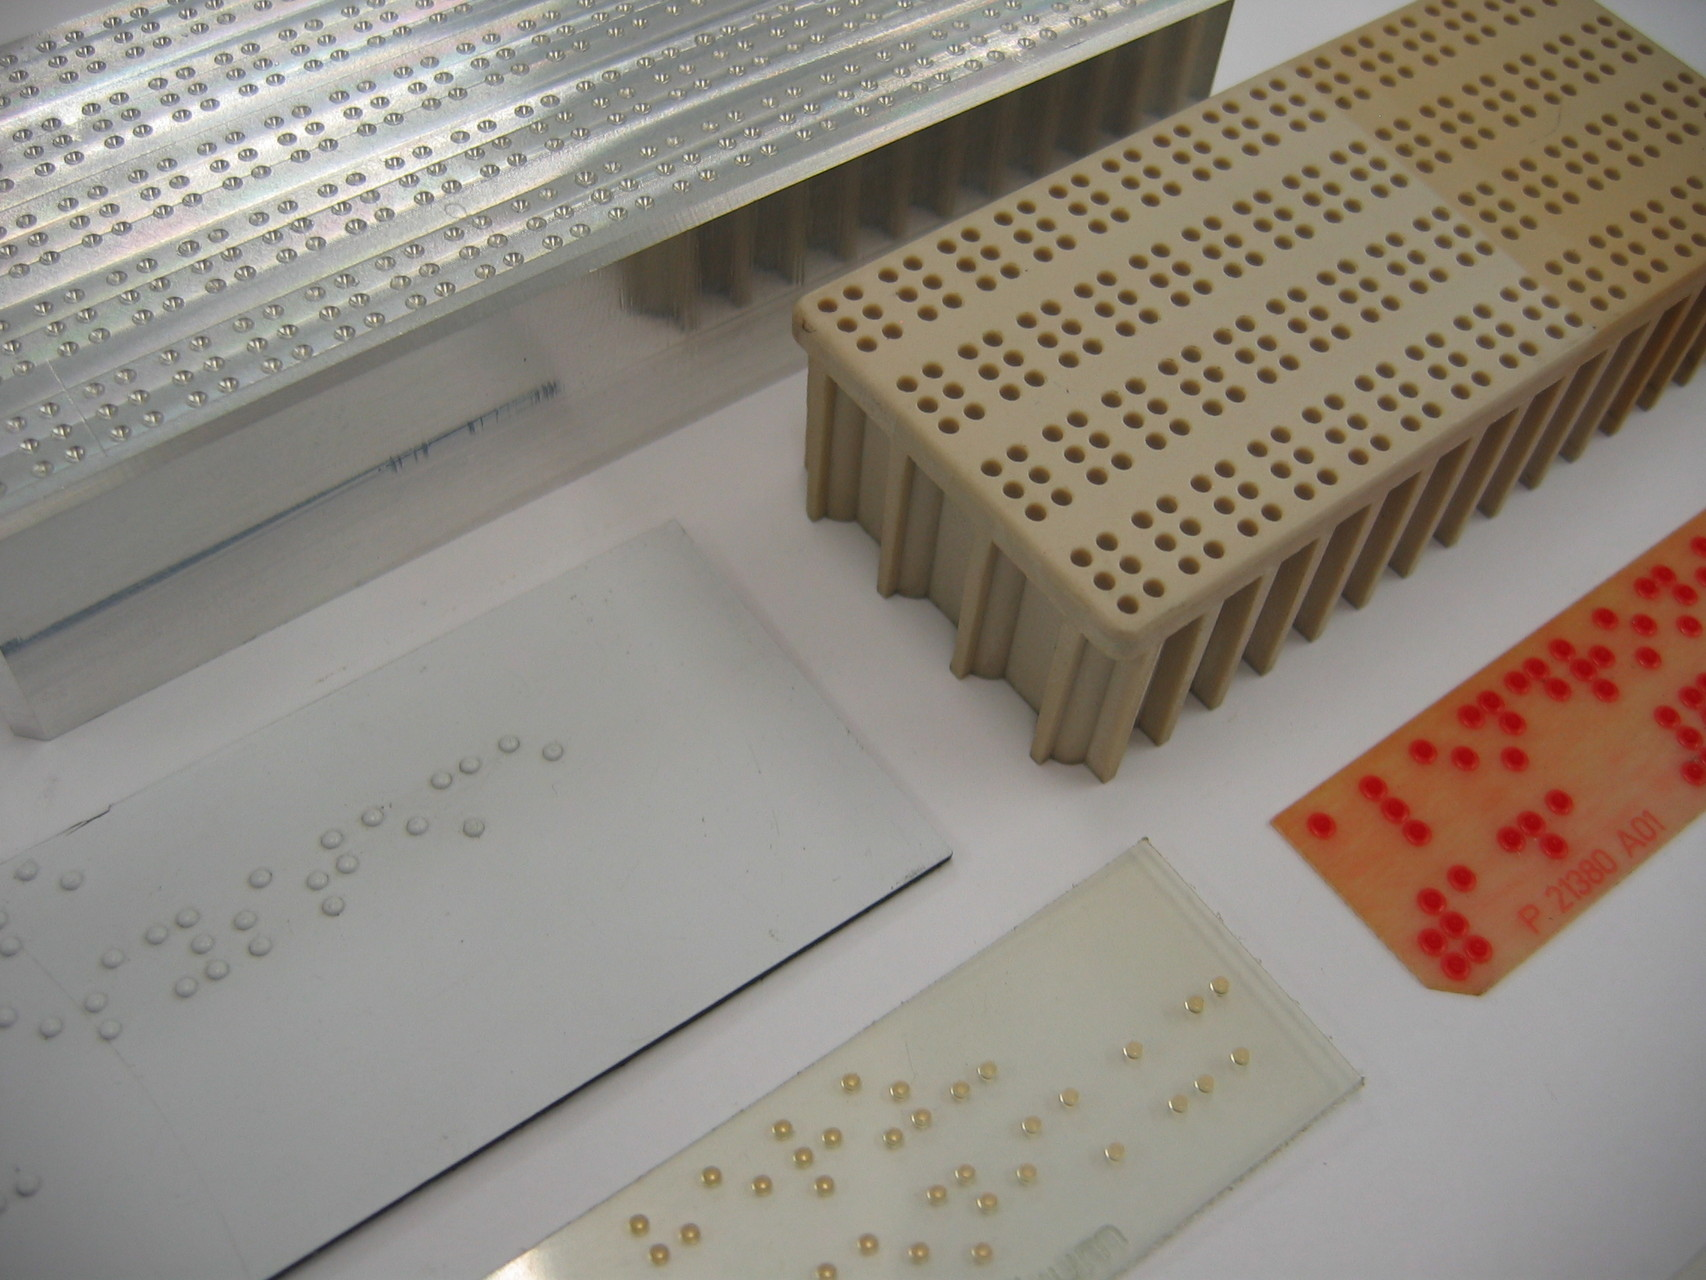 Blindenschrift Braille